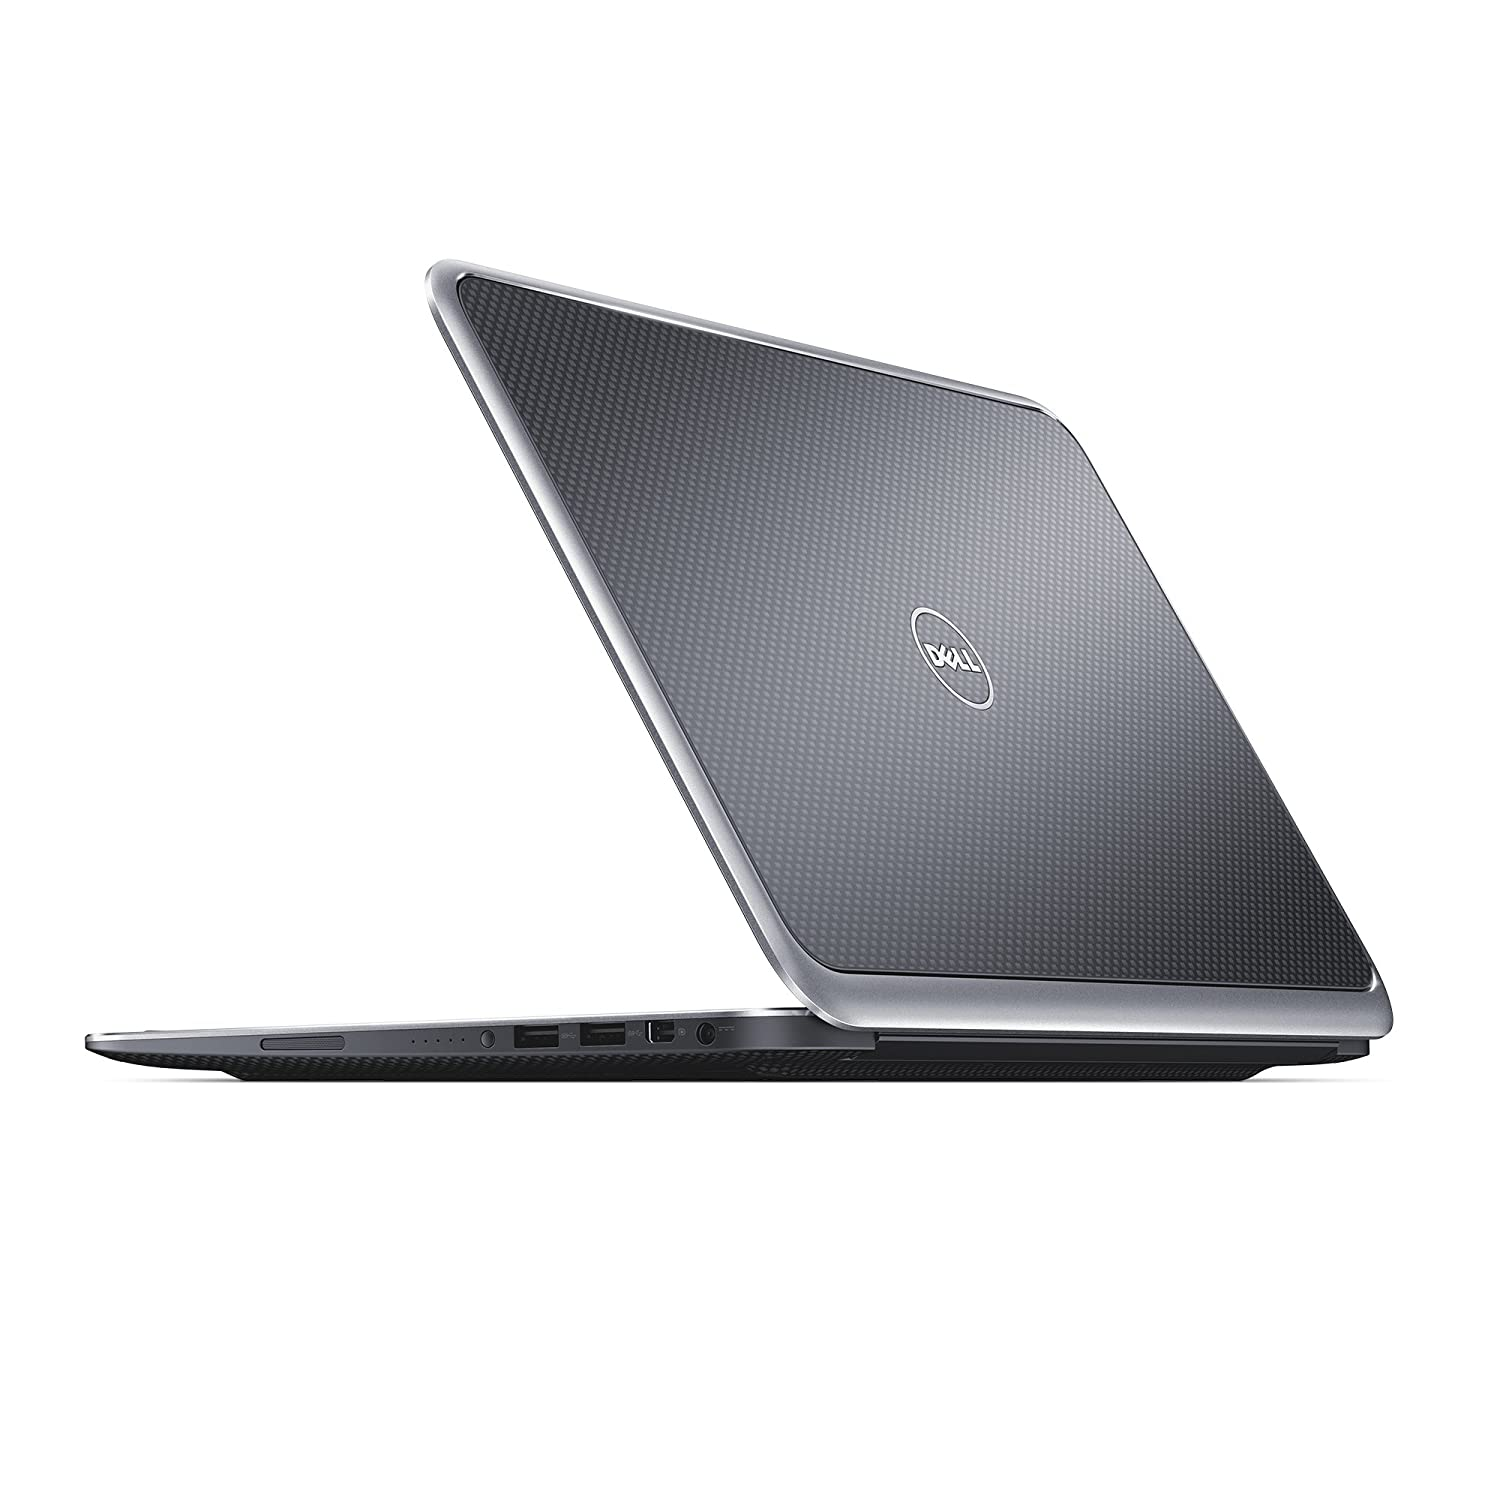 Dell-XPS-12-5-Inch-2-in-1-Convertible-Touchscreen-Ultrabook-XPSU12-4671CRBFB-